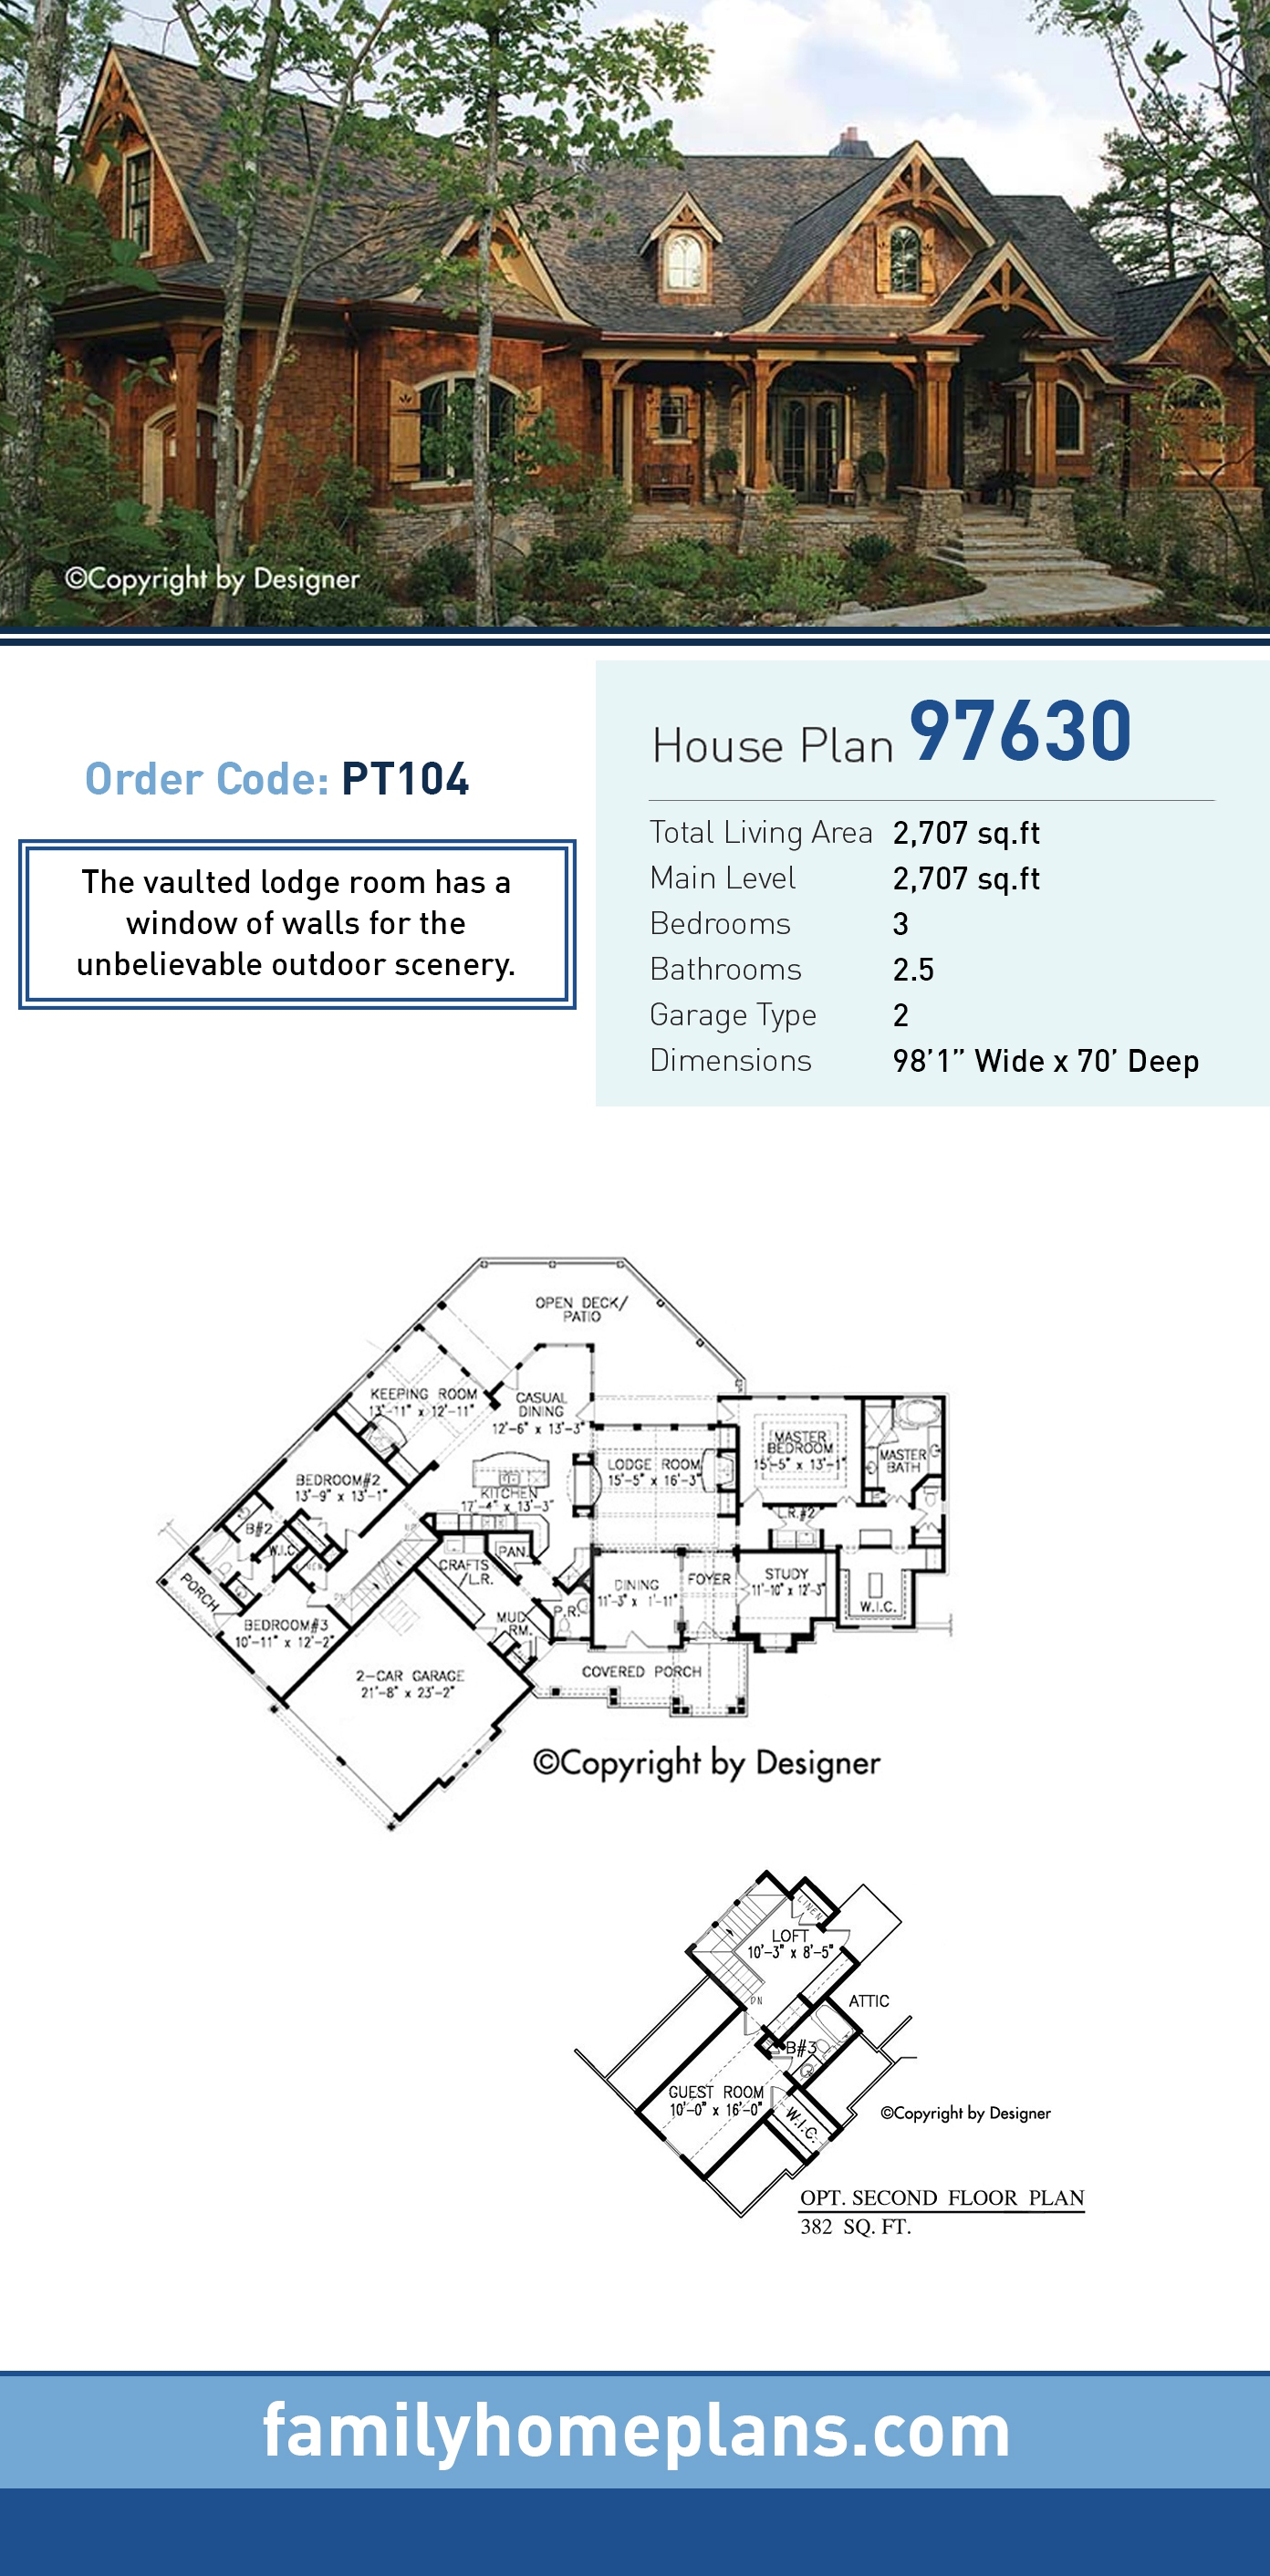 Cottage, Country, Craftsman, Traditional House Plan 97630 with 3 Beds, 3 Baths, 2 Car Garage